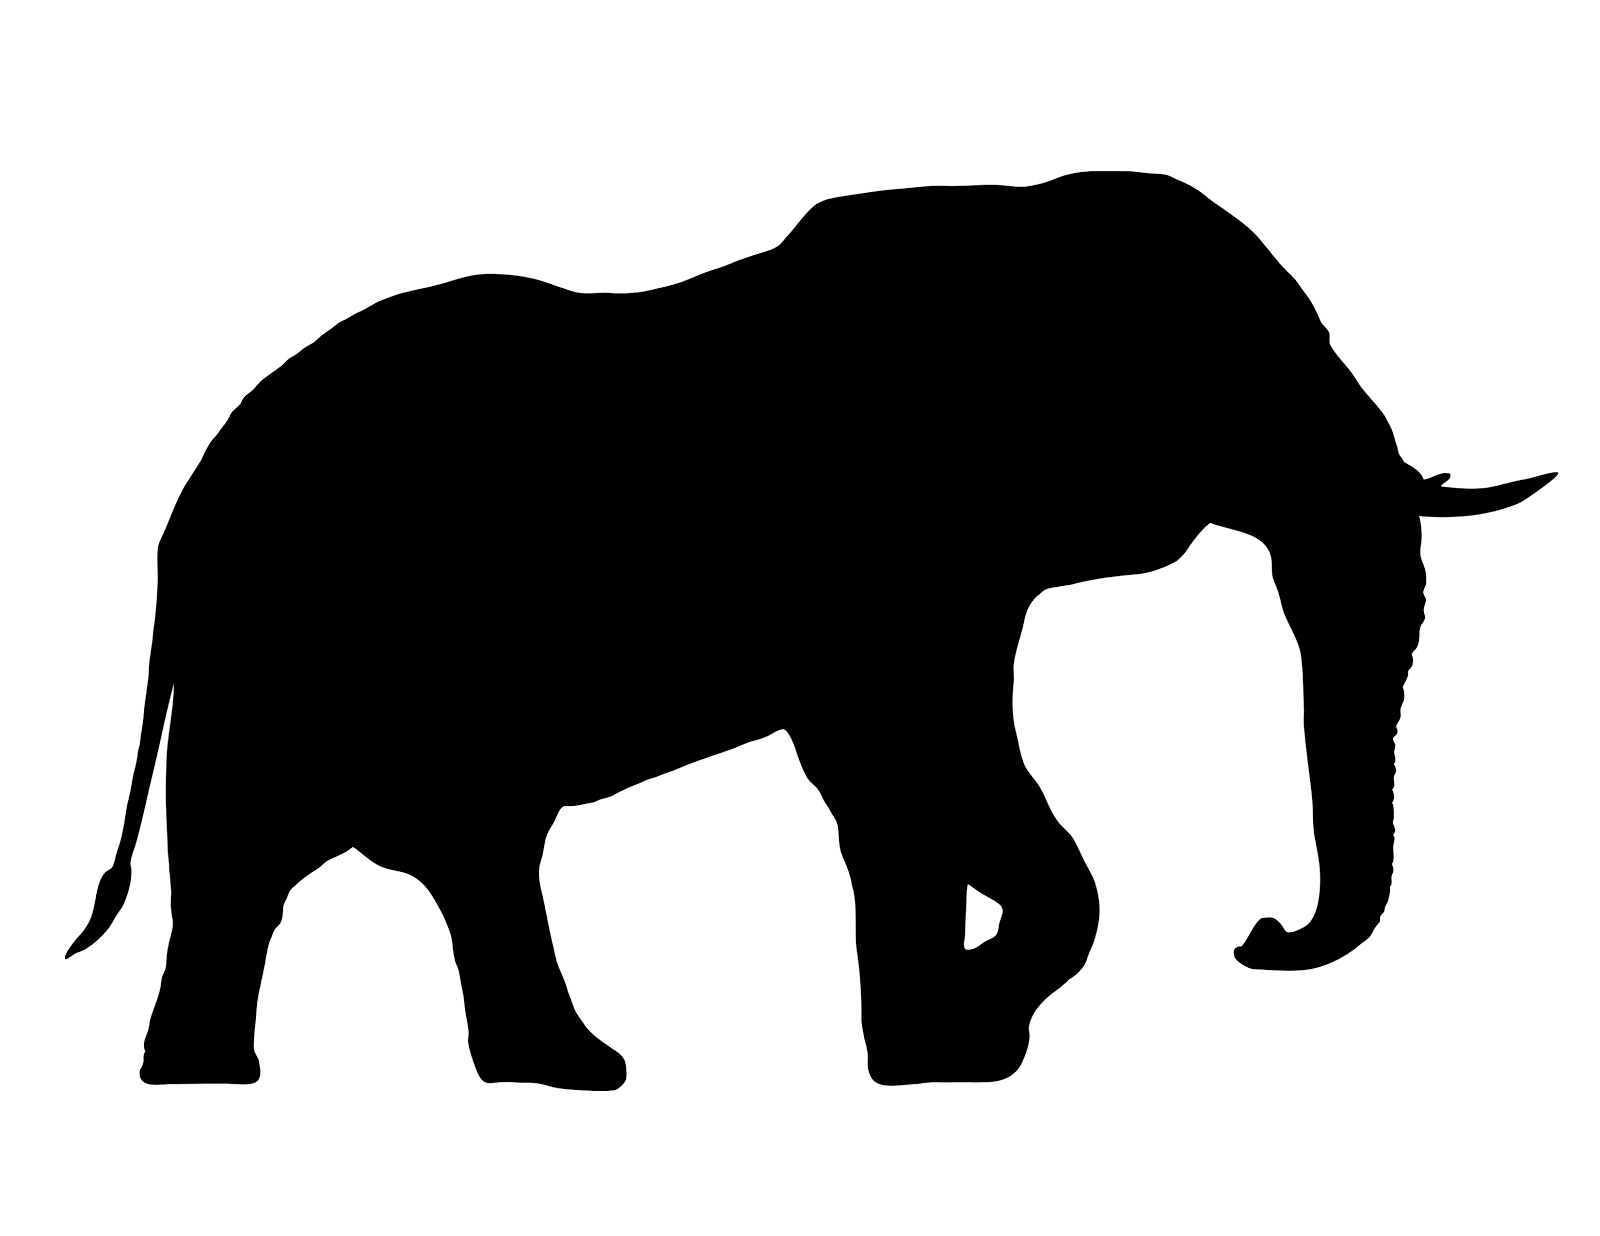 Elephant silhouette - photo#6